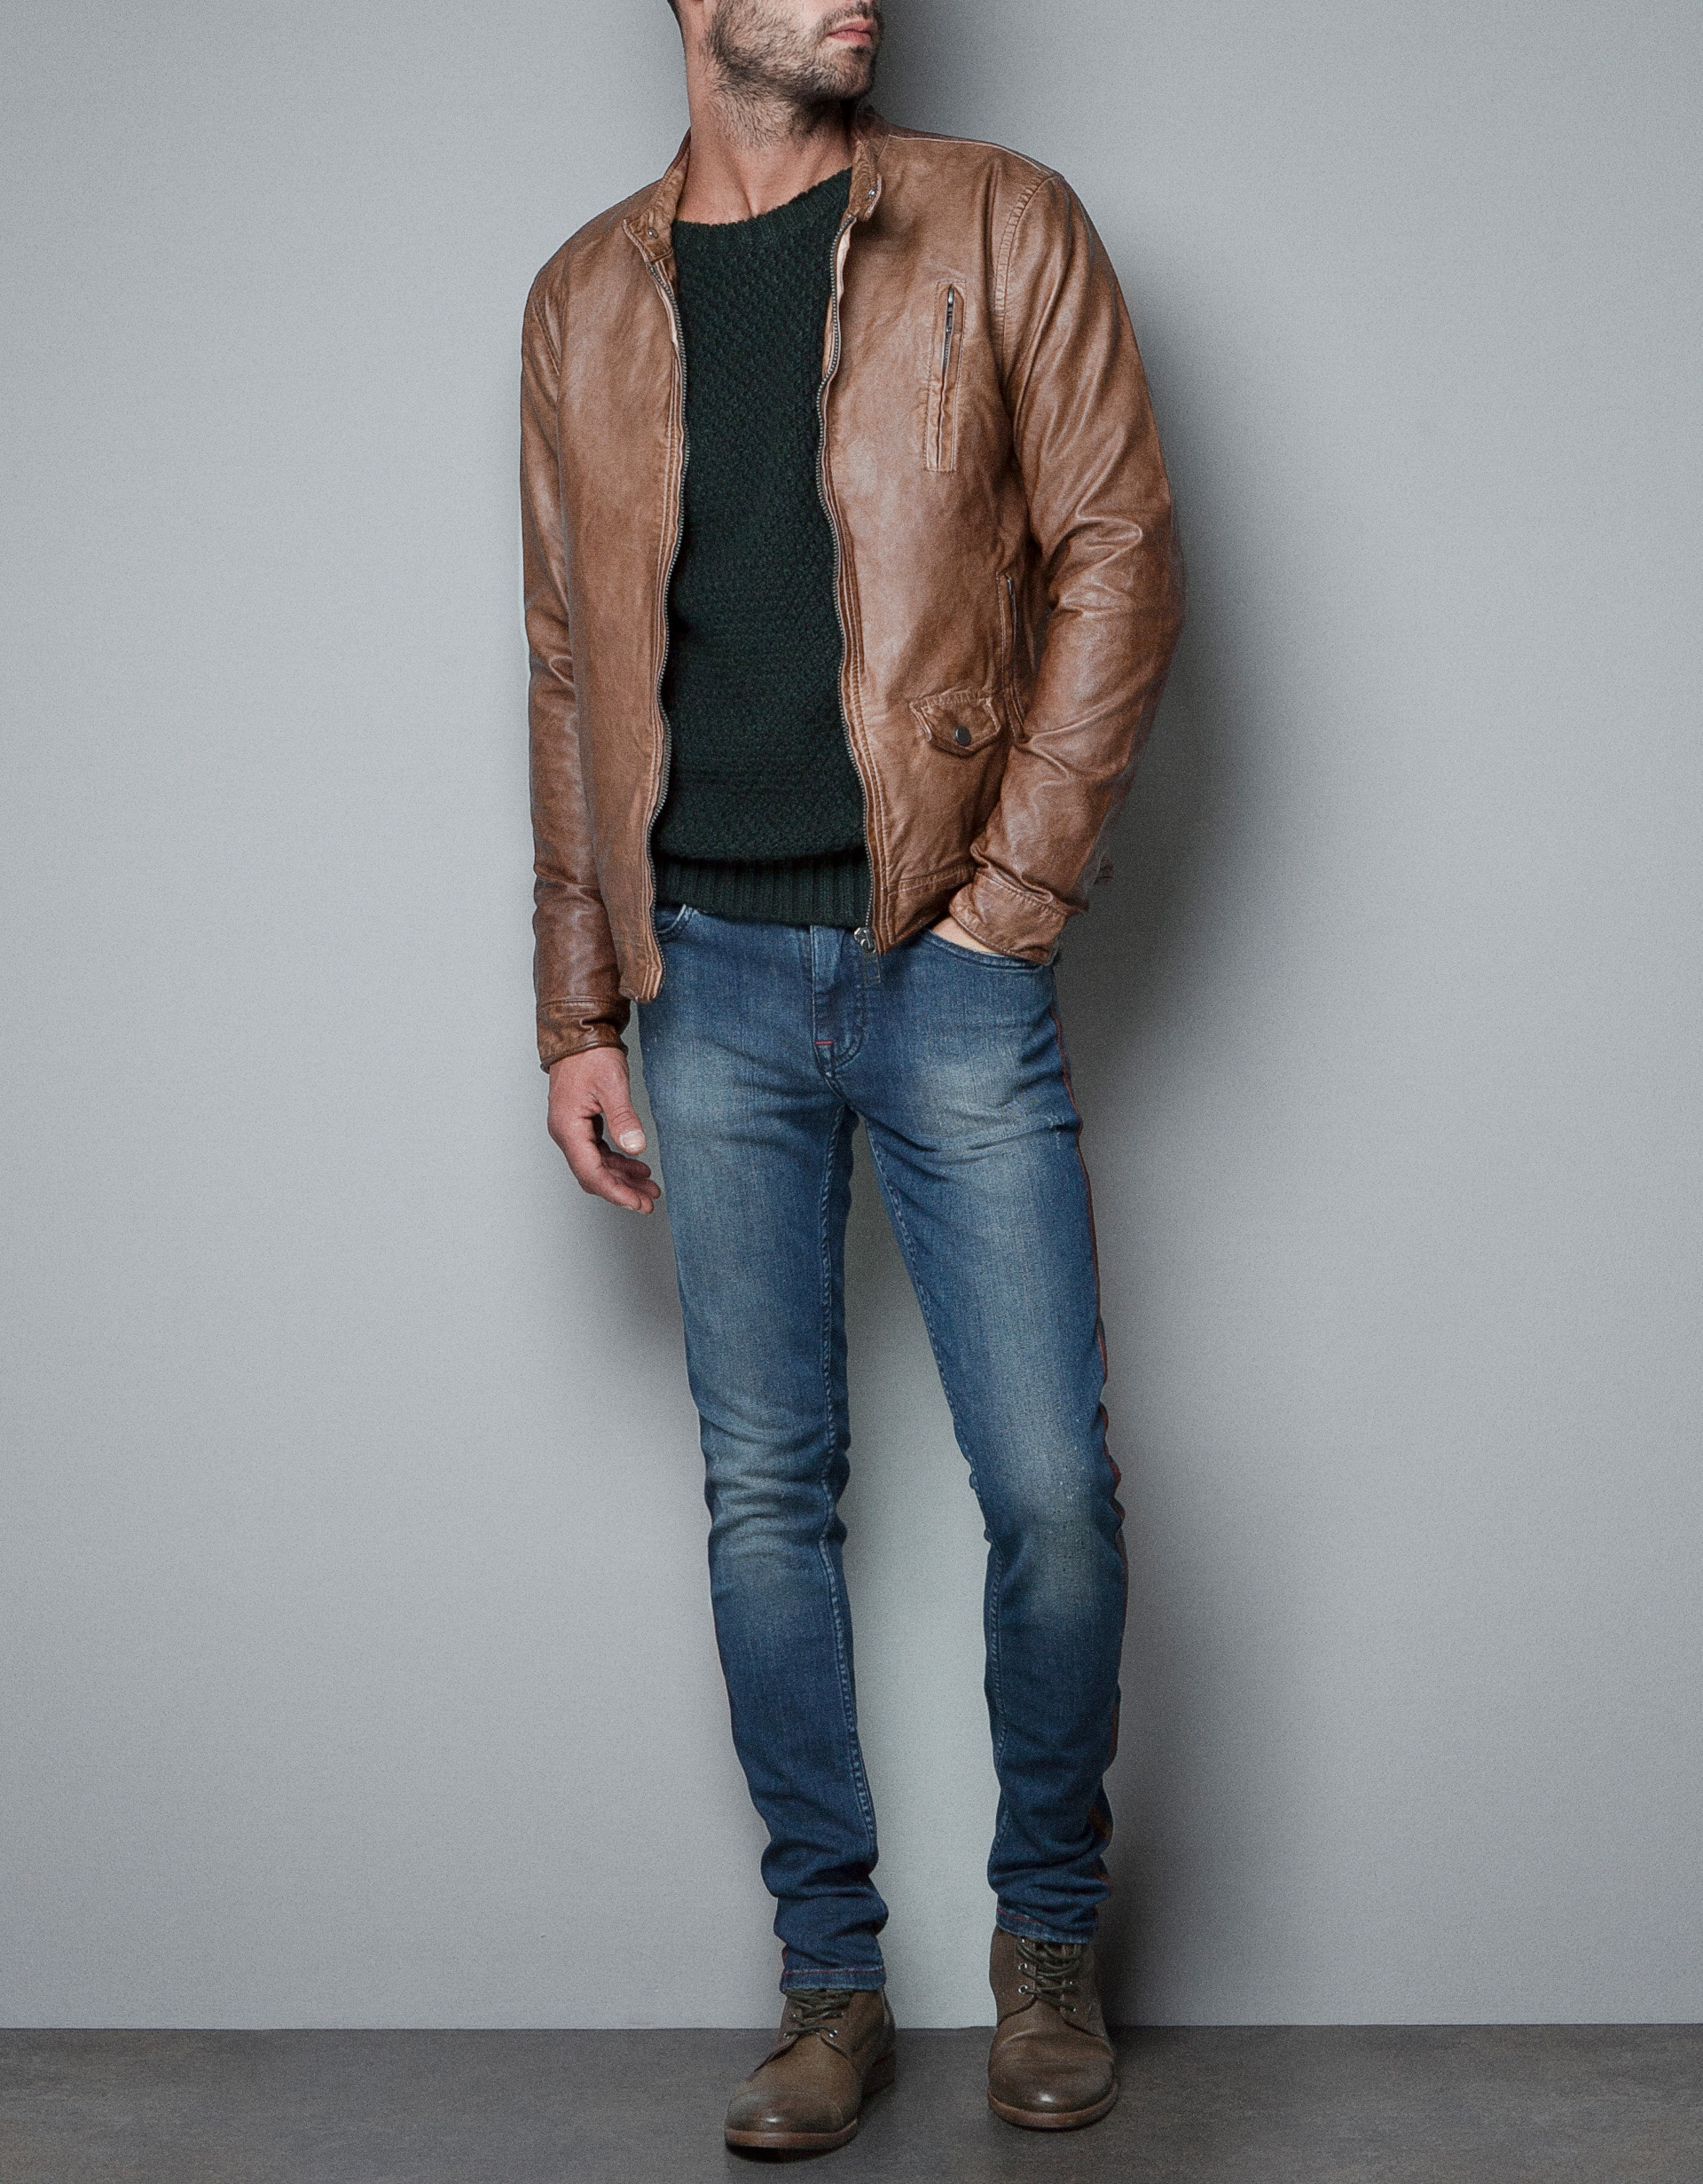 A brown leather jacket, by its very nature, can be the epitome of casual cool. It can also be dressed up to look distinctive and professional. Deciding which colors to wear with your jacket can be somewhat of a chore considering the myriad of fashion choices that are available.